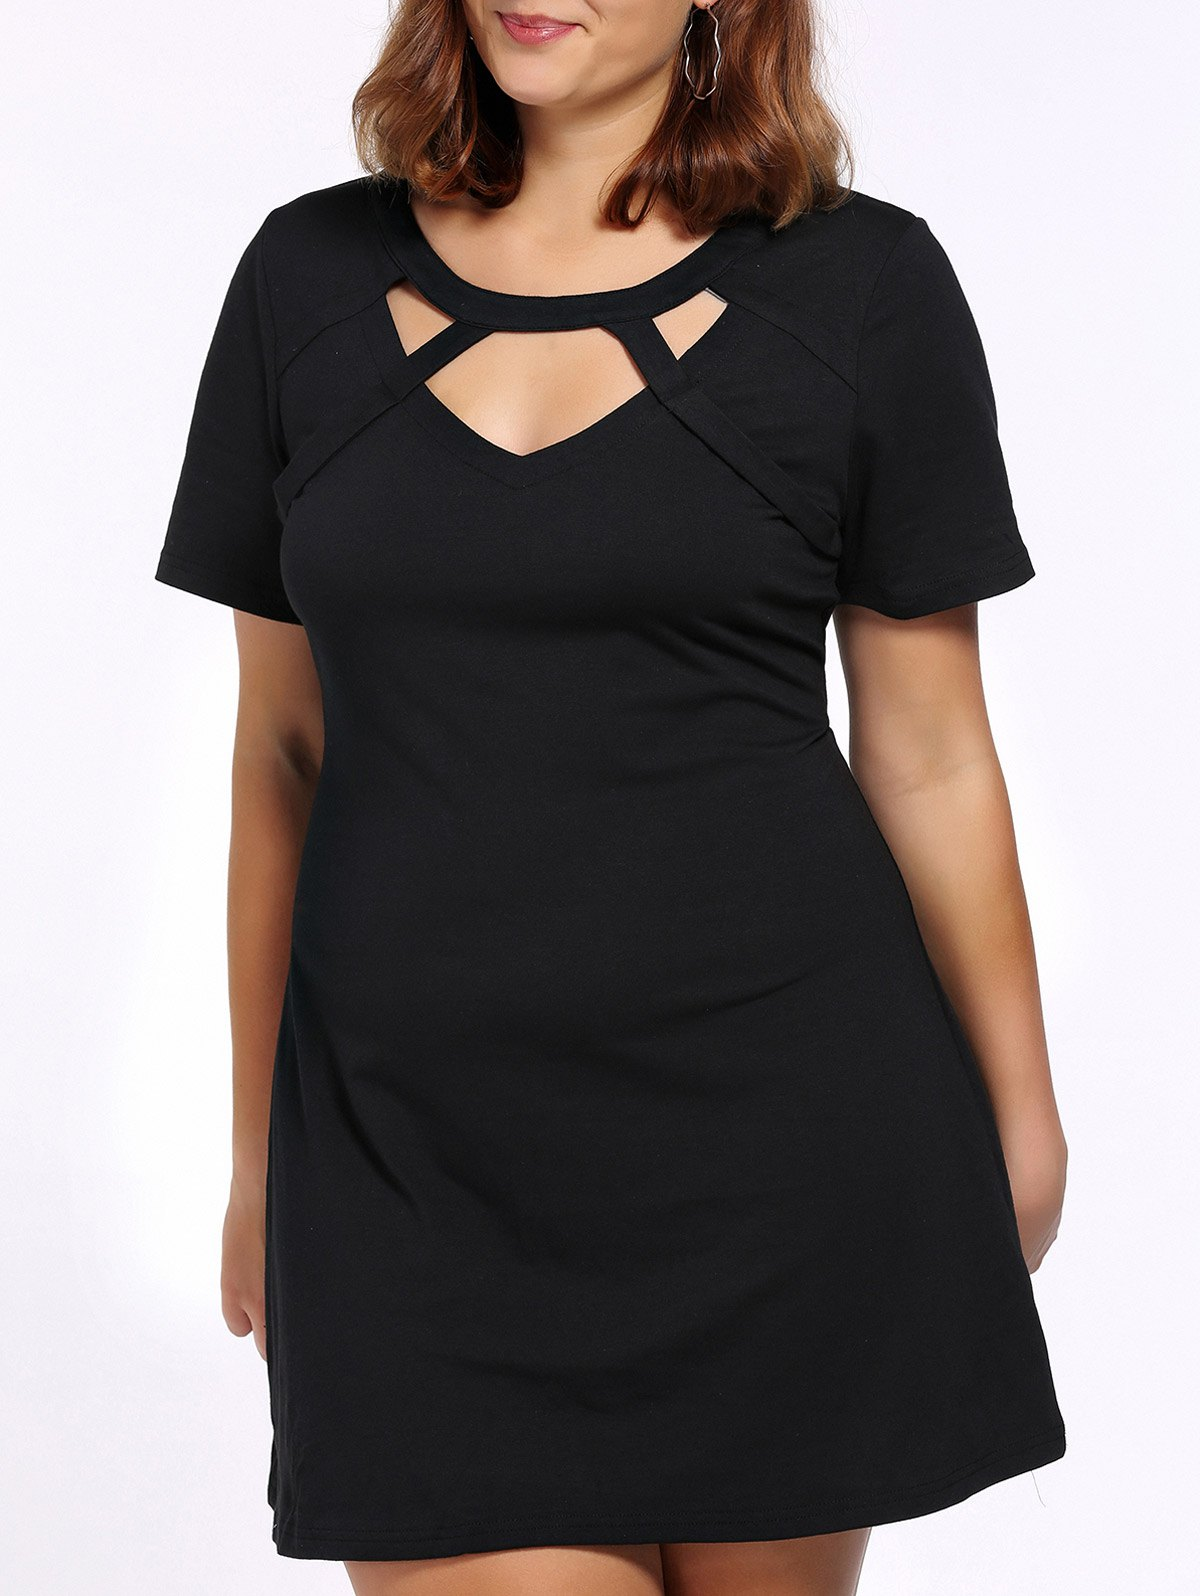 Alluring Plus Size Cut Out Women's Black Dress - BLACK 4XL